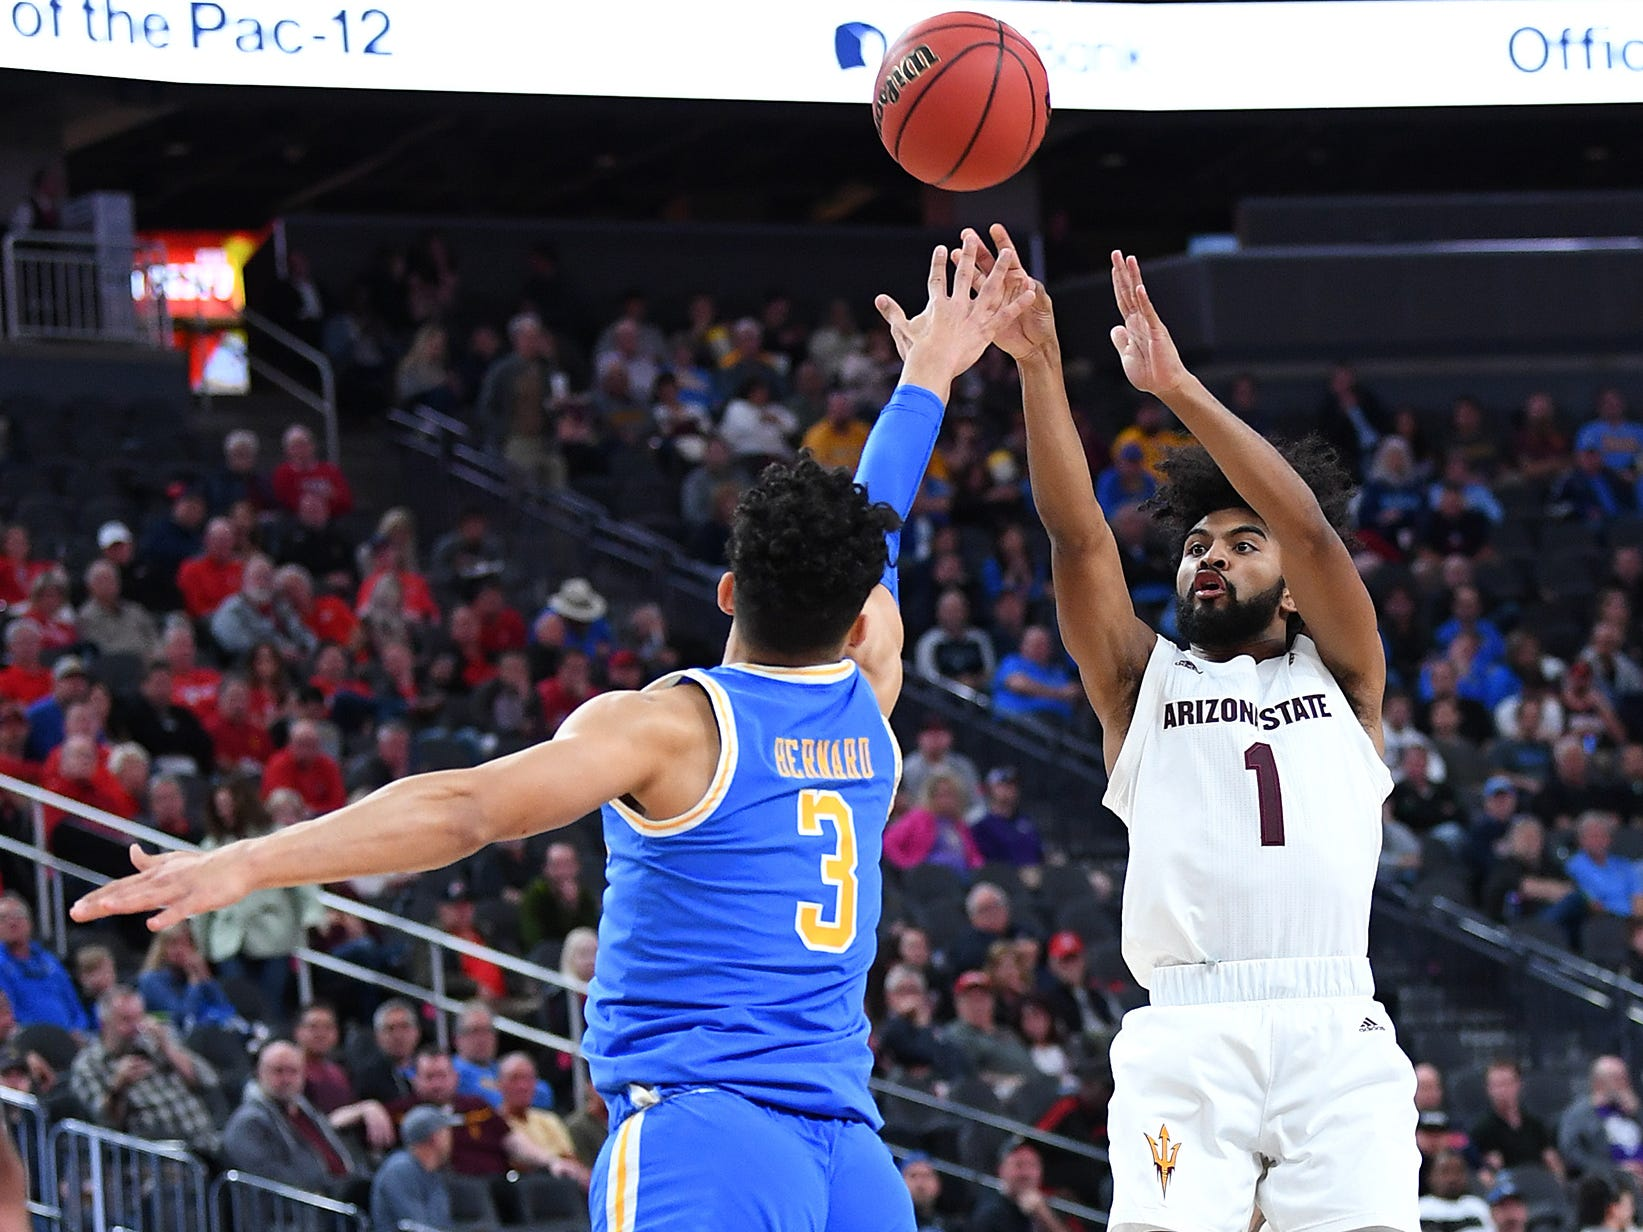 Mar 14, 2019; Las Vegas, NV, United States; Arizona State Sun Devils guard Remy Martin (1) shoots against UCLA Bruins guard Jules Bernard (3) during the first half of a Pac-12 conference tournament game at T-Mobile Arena.